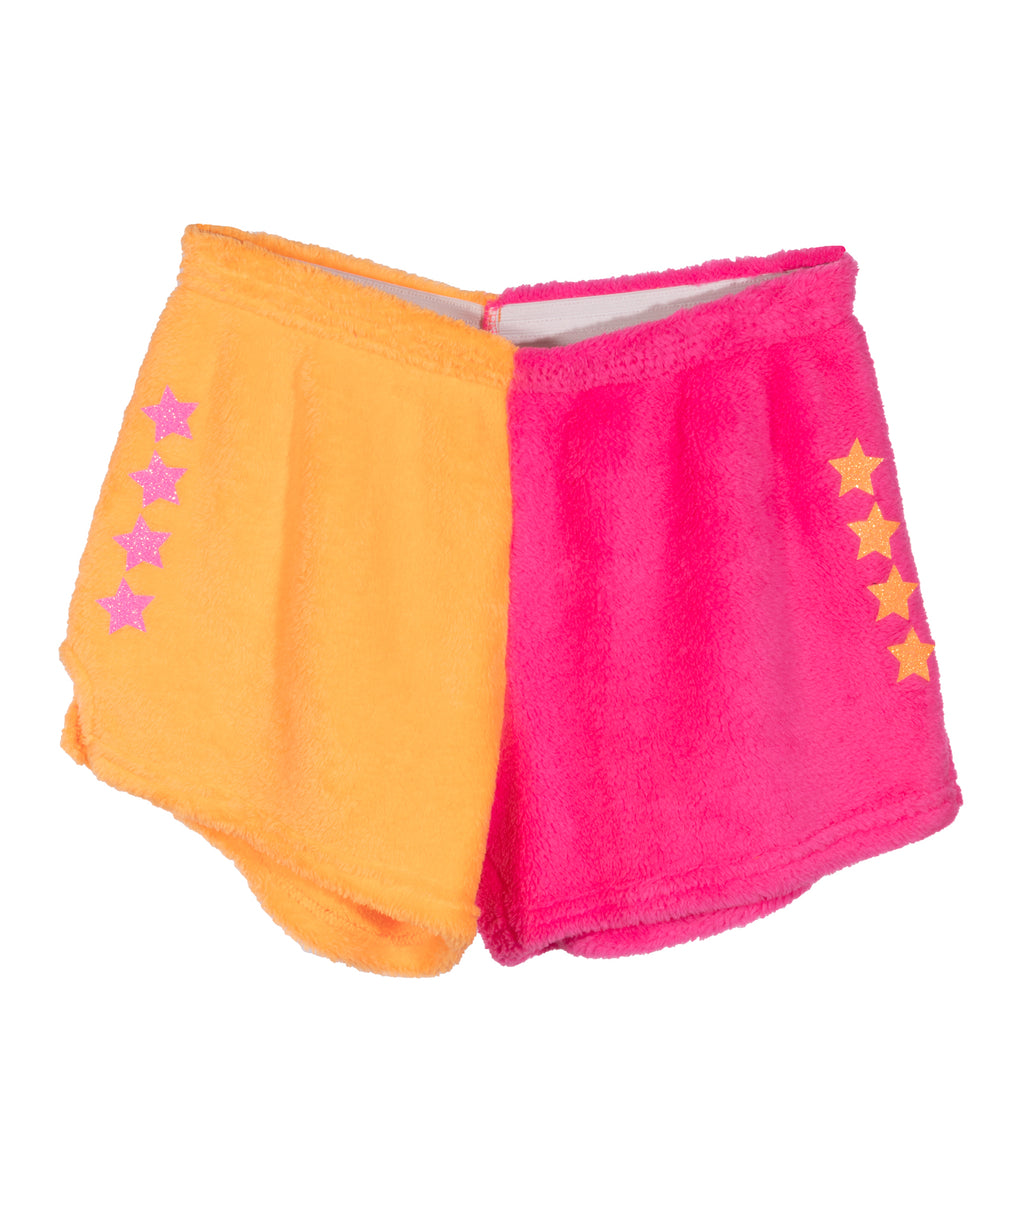 Made with Love and Kisses Girls Pink and Orange Glitter Star Pajama Shorts